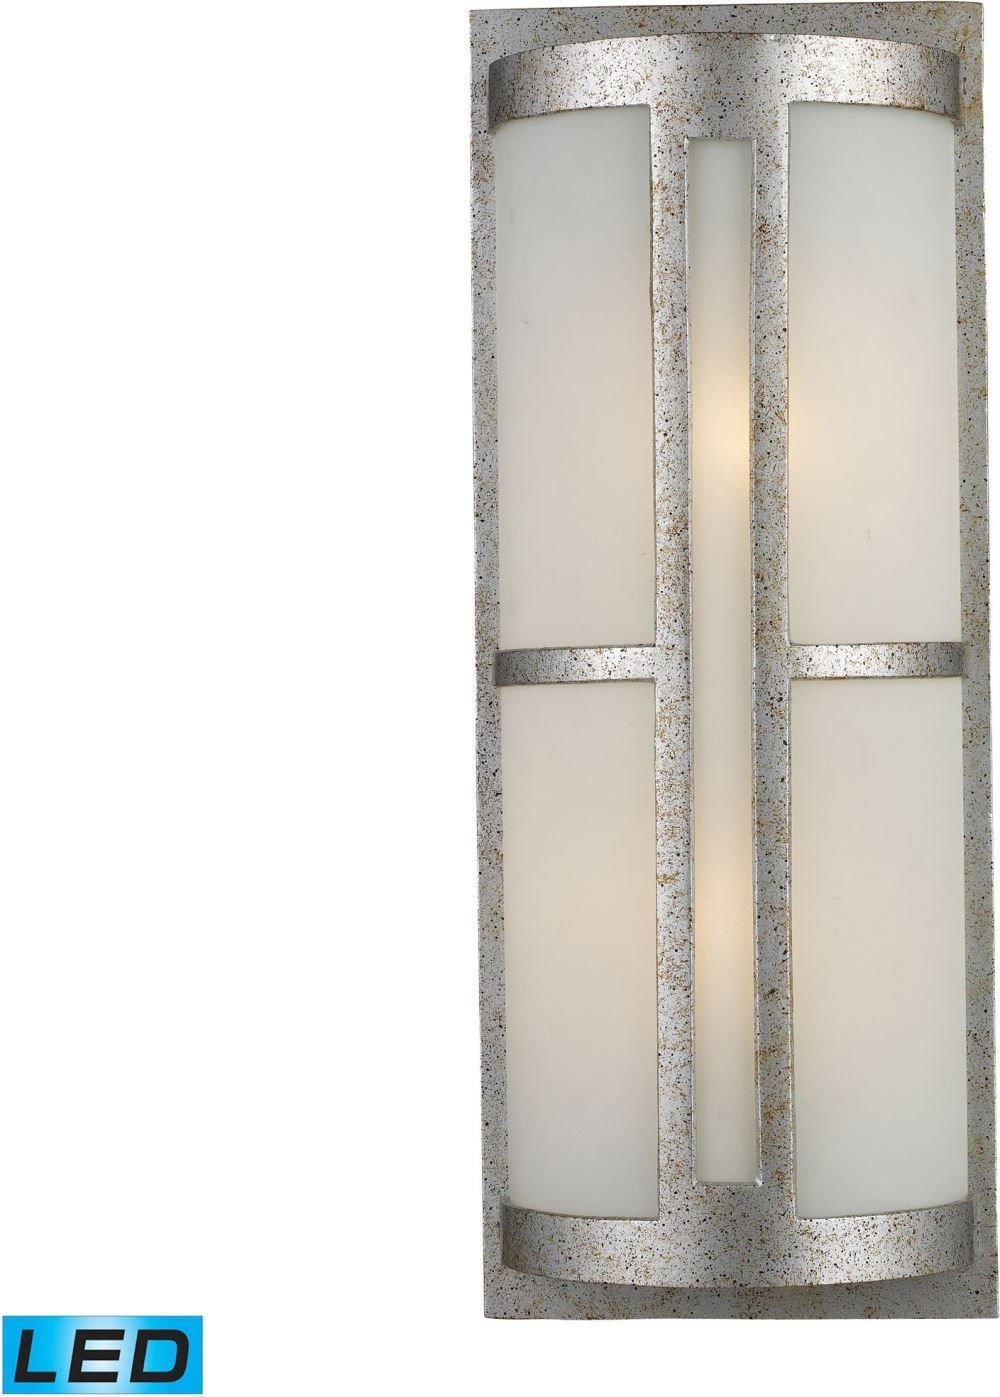 Trevot light outdoor led wall sconce in sunset silver and frosted